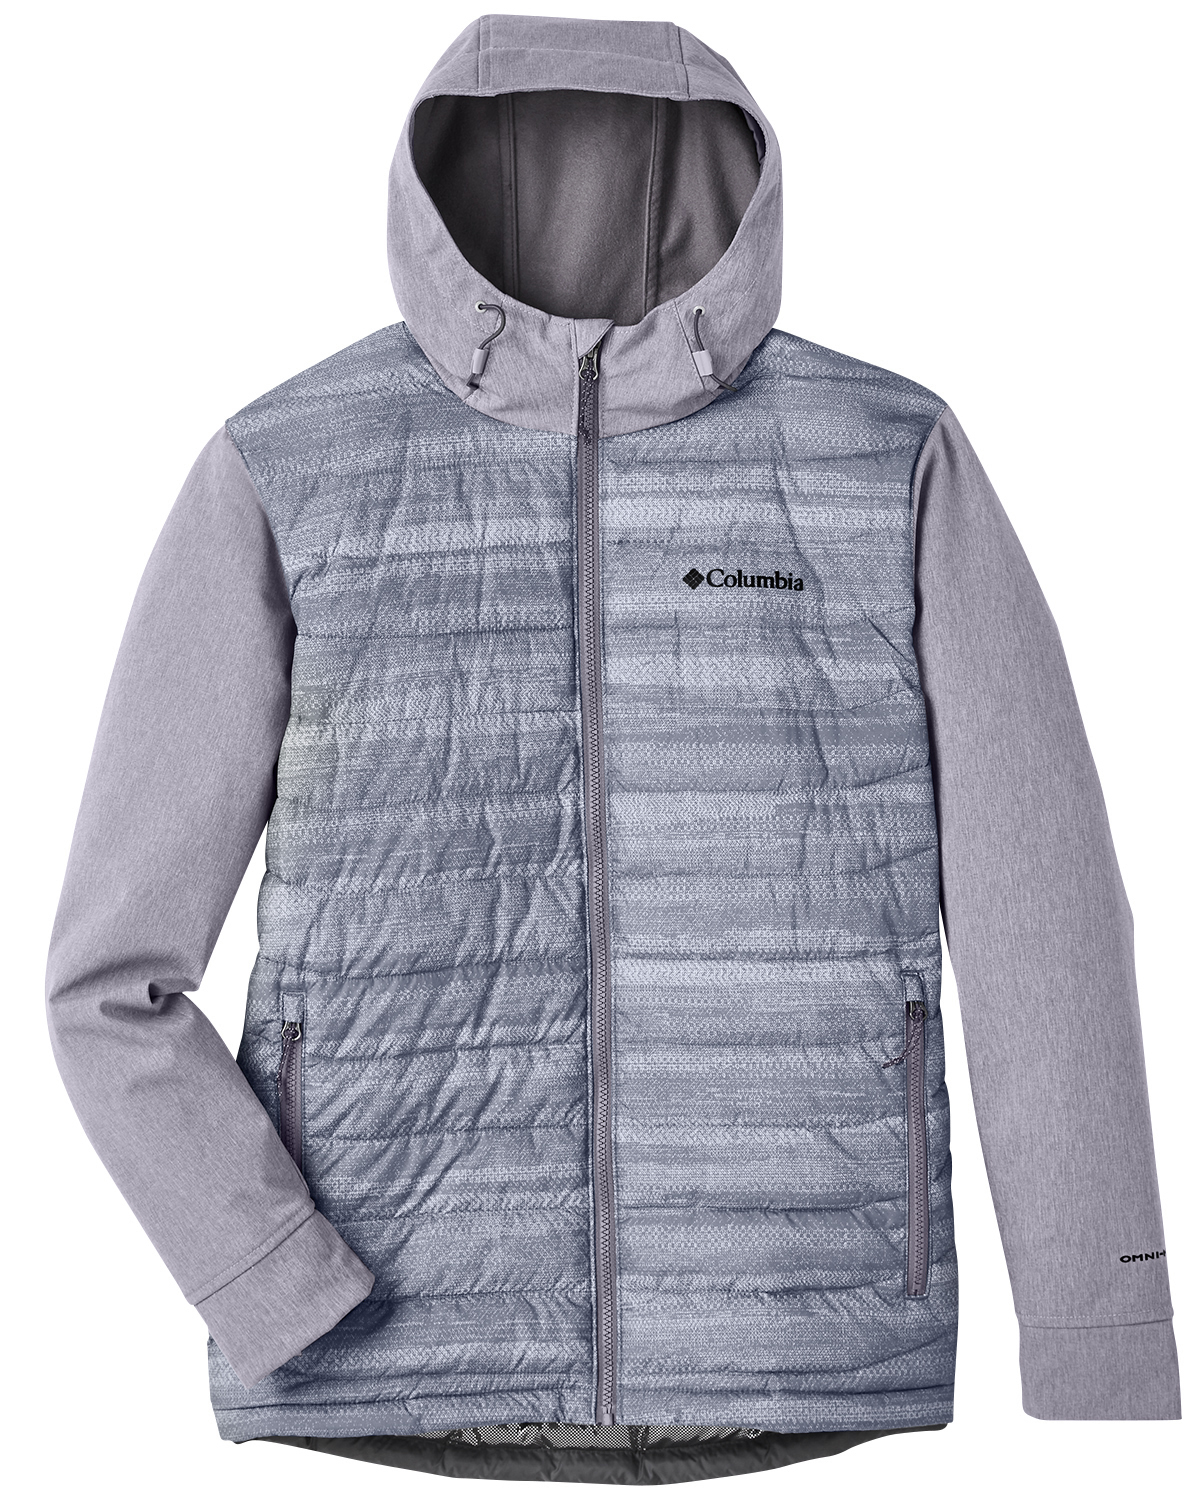 Picture of Columbia Men's Powder Lite Hybrid Jacket